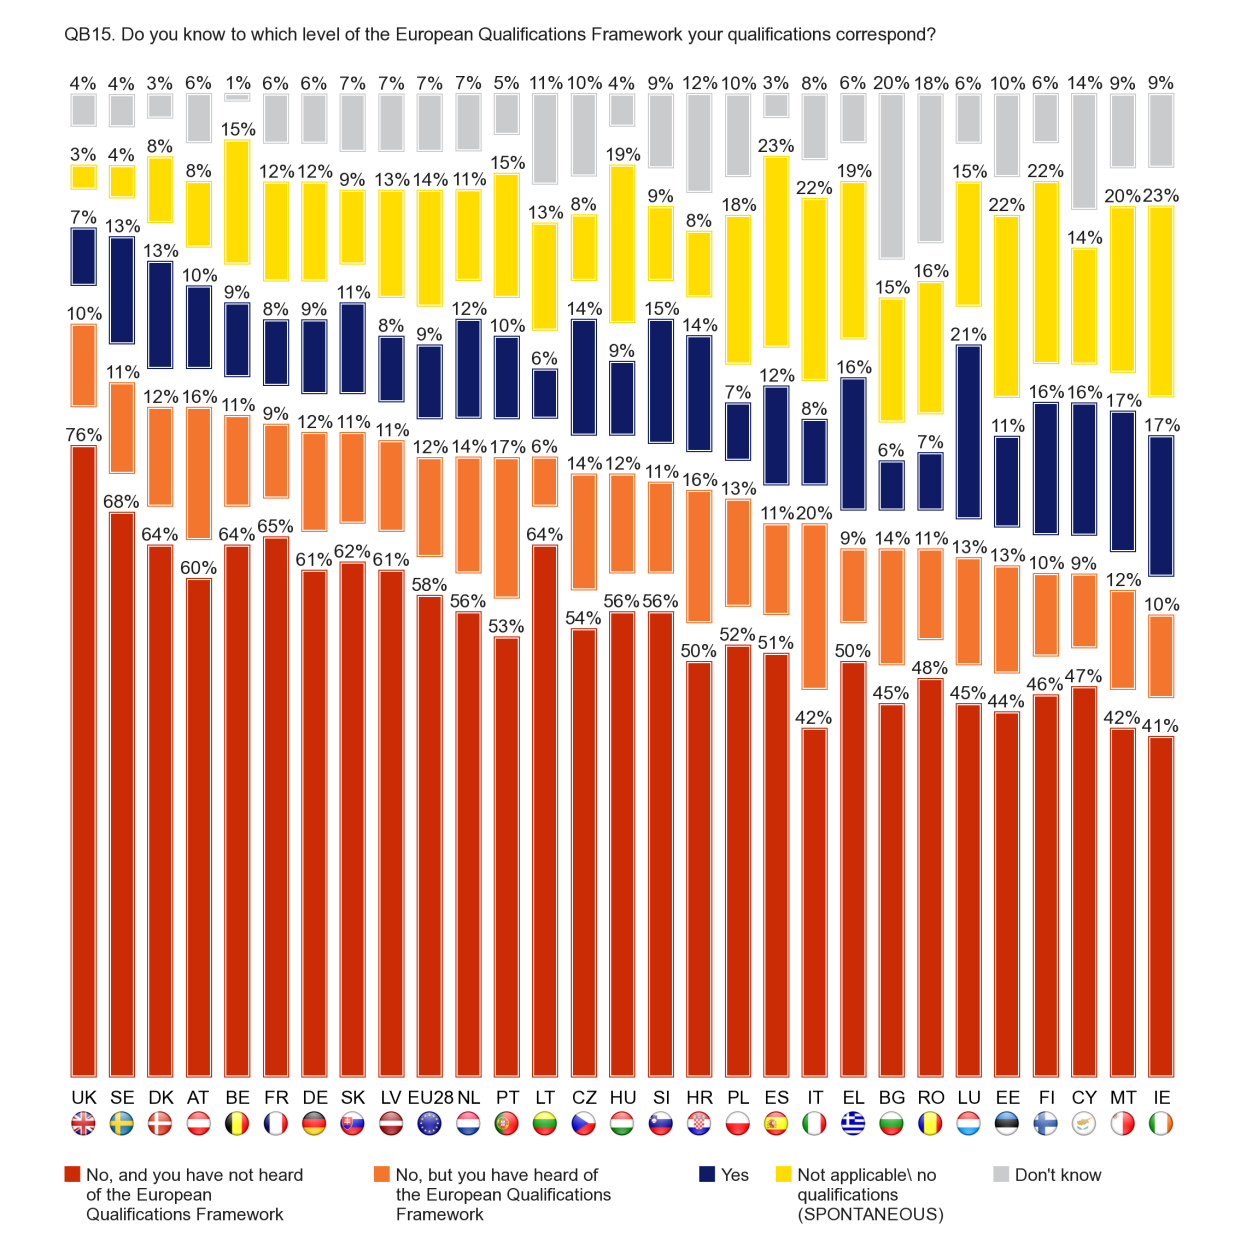 In the findings for individual Member States, respondents in Luxembourg (21%), Malta (17%) and Ireland (17%) are most likely to say that they know the level of the European Qualifications Framework